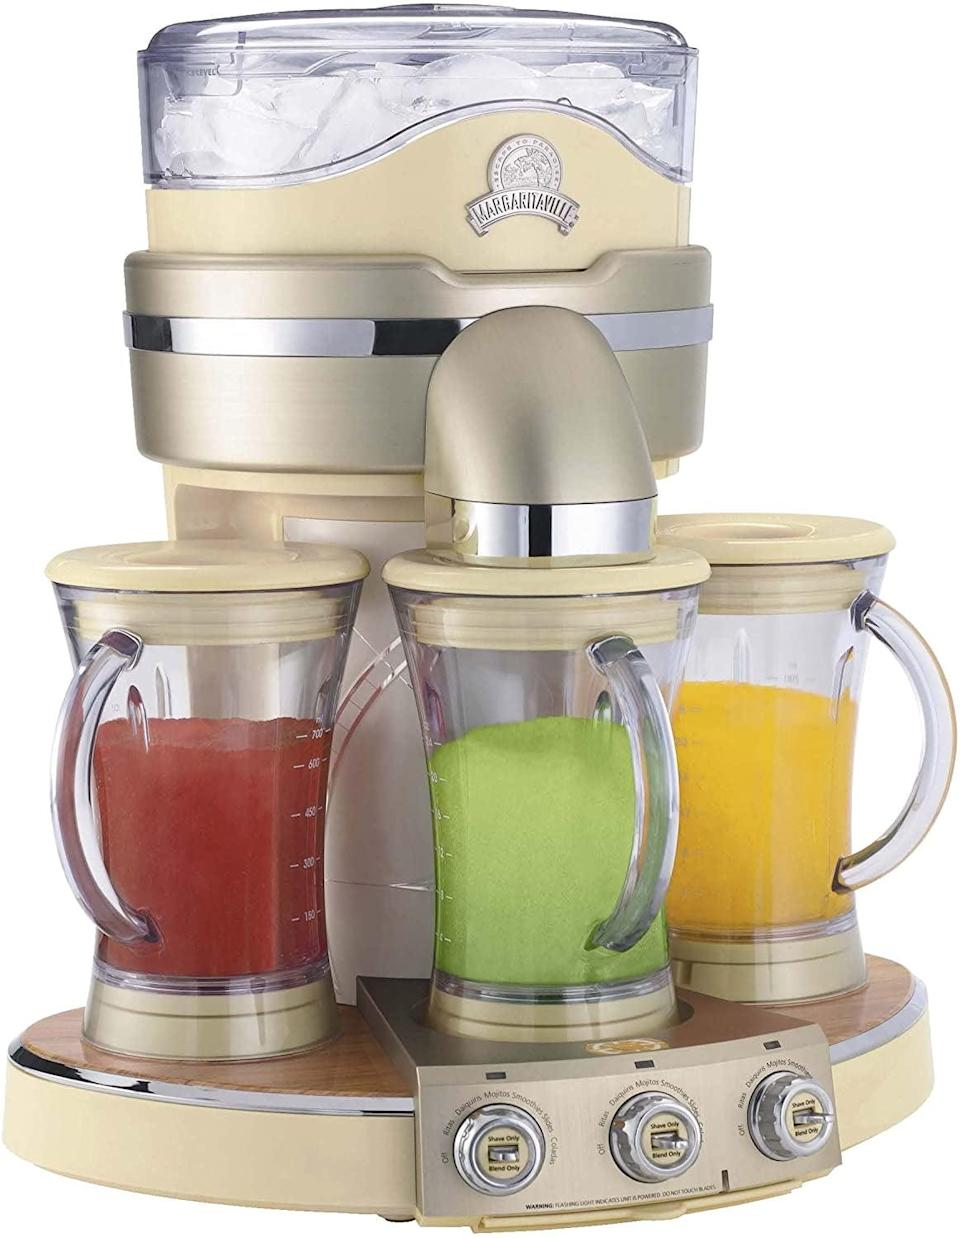 <p>The <span>Margaritaville Tahiti Frozen Concoction Maker</span> ($400, originally $500) let's you create three different frozen drink pitchers including, margarita, daiquiri, colada, mudslide, mojito, smoothies, and more. It's great for entertaining and creating multiple cocktails at in a jiffy!</p>